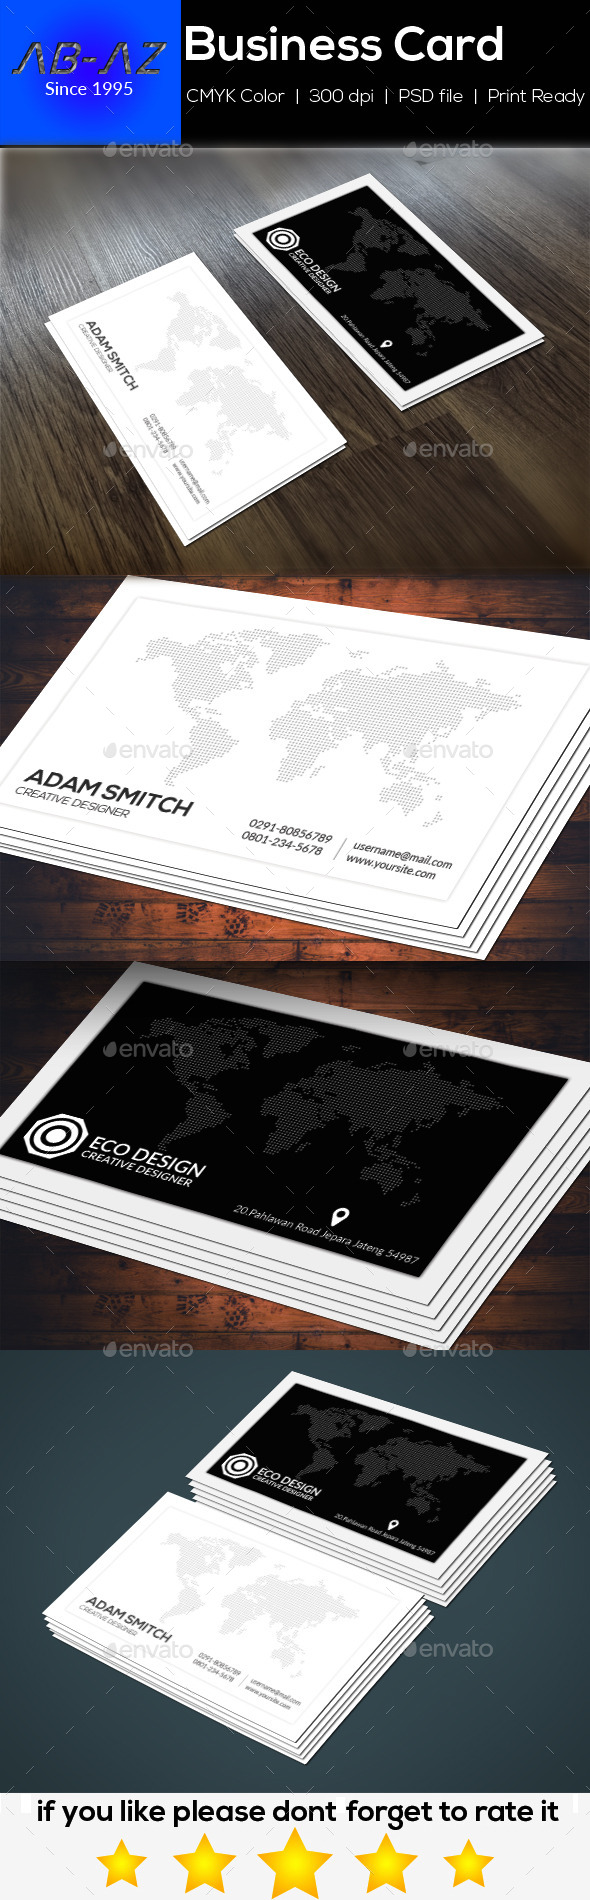 Simple Clean Business Card - Business Cards Print Templates